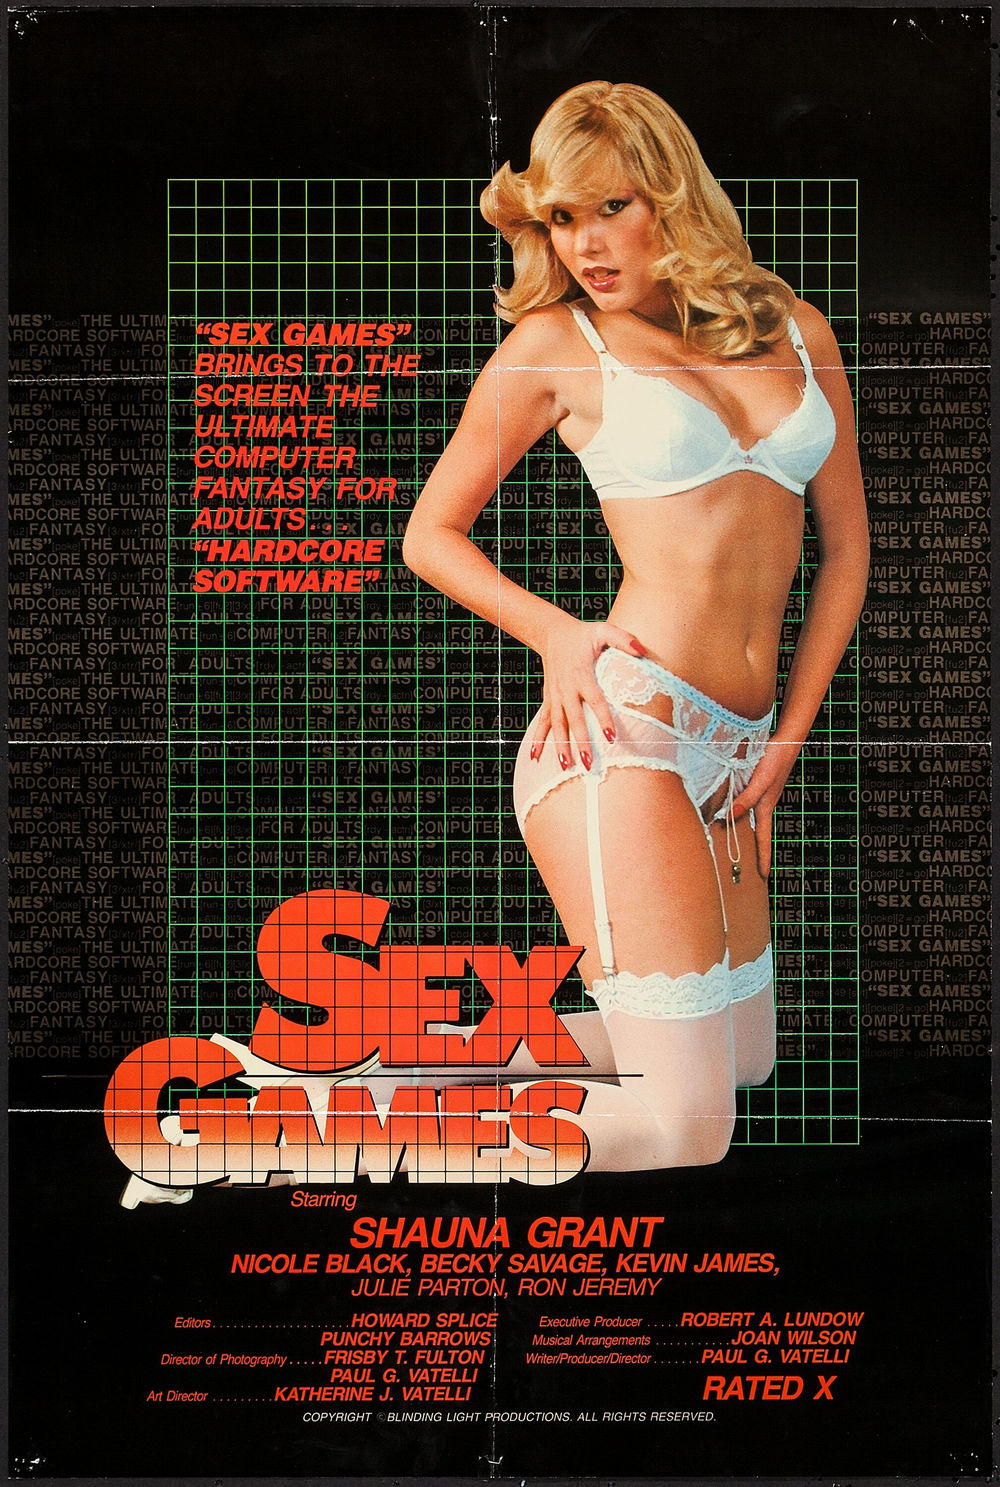 Sex Games - US 1 Sheet